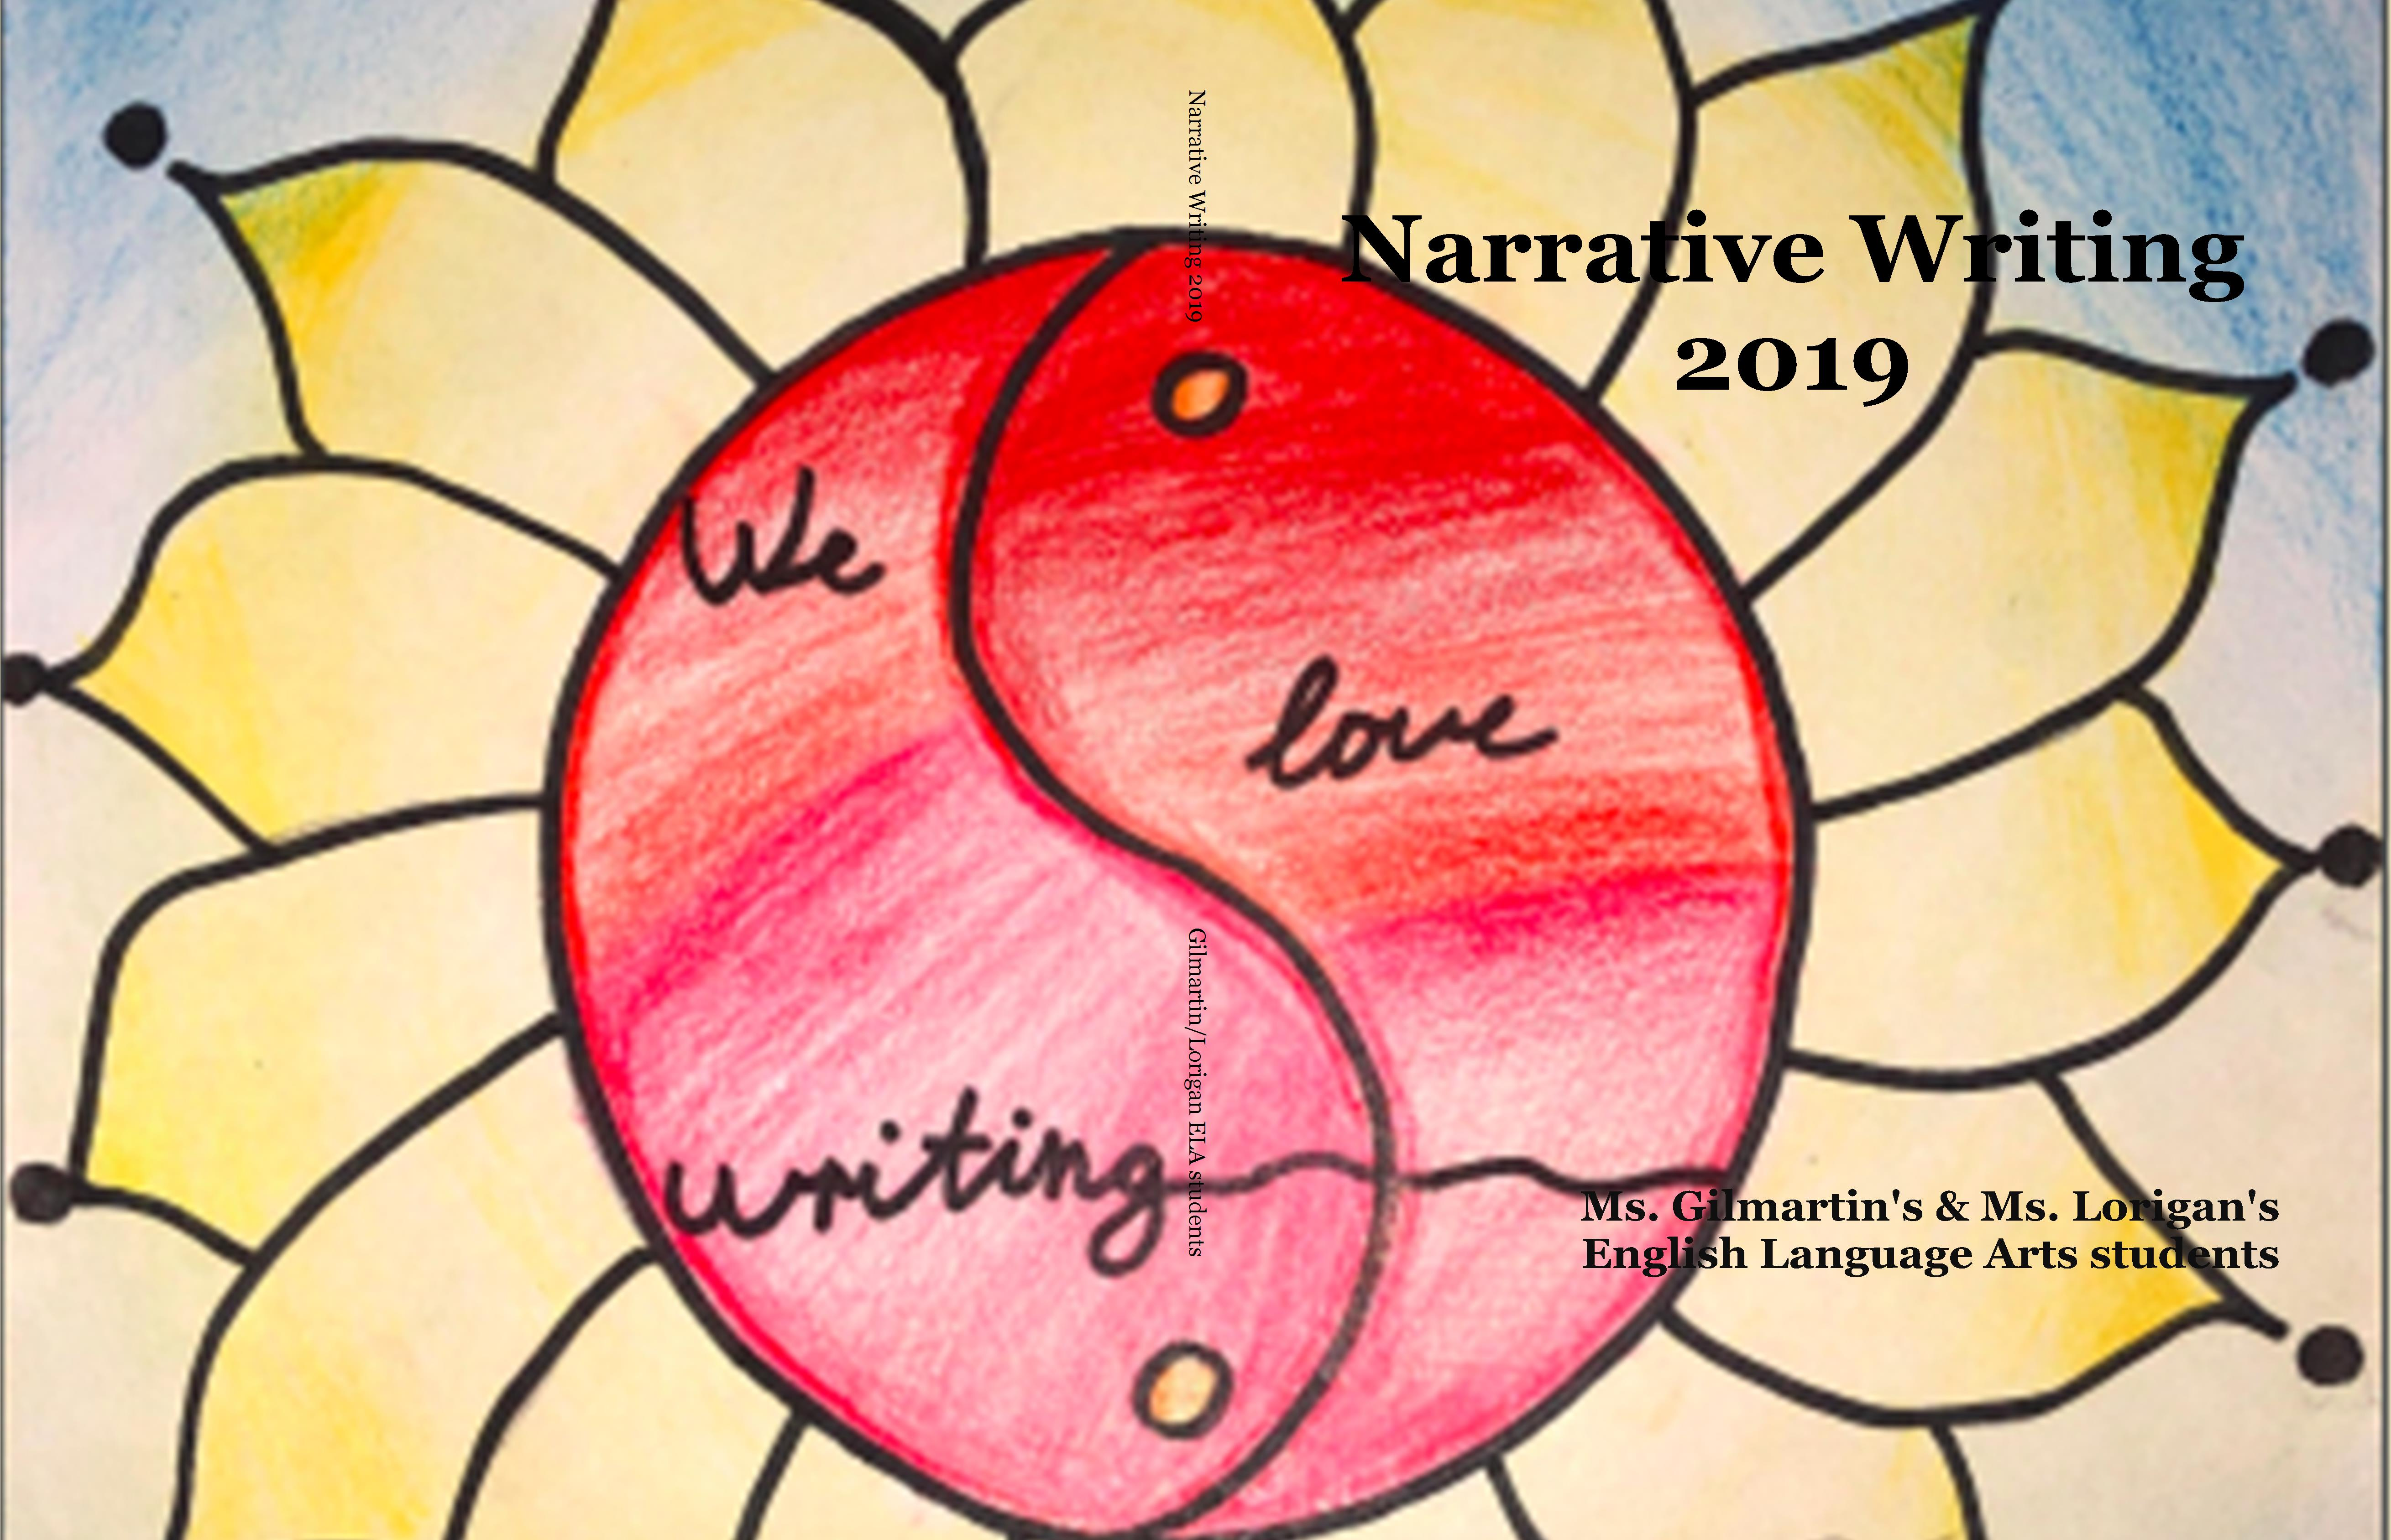 Narrative Writing 2019 cover image